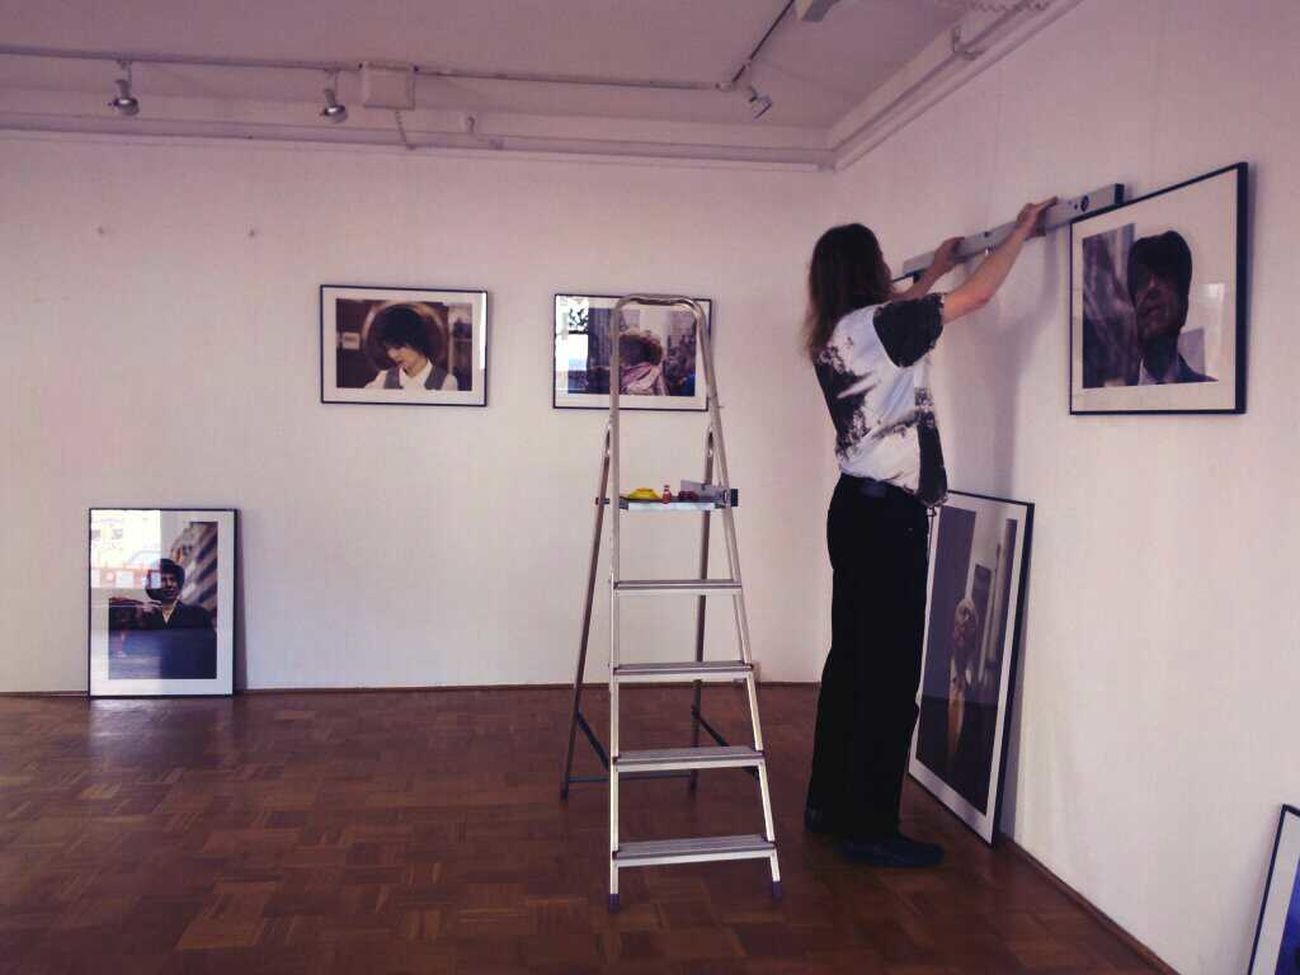 Preparing the exhibition. #Berlin #urbanballads